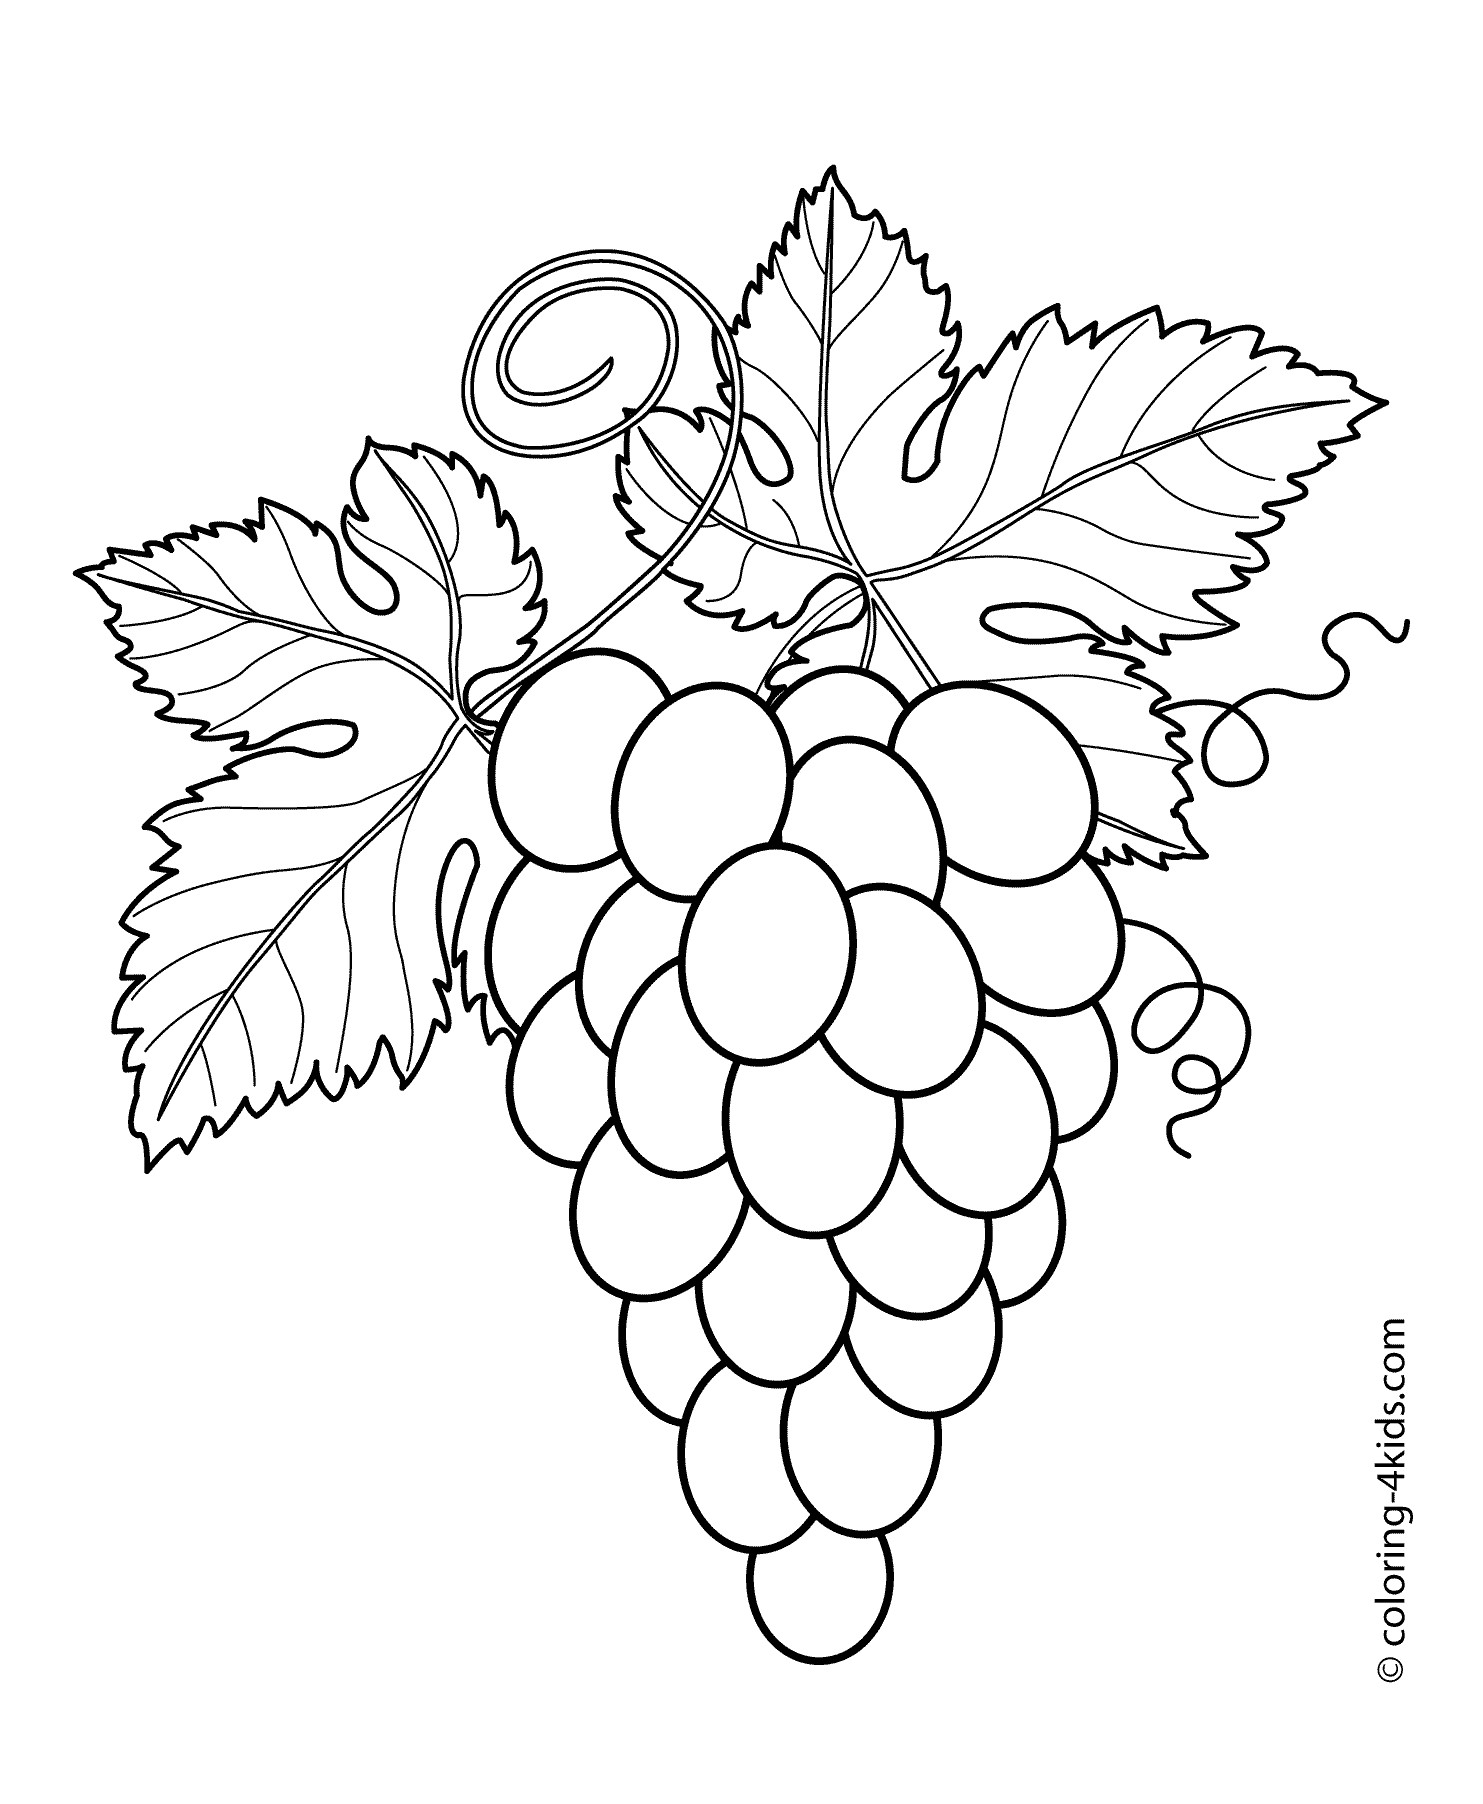 Grapes clipart coloring sheet. Page illustration of grape